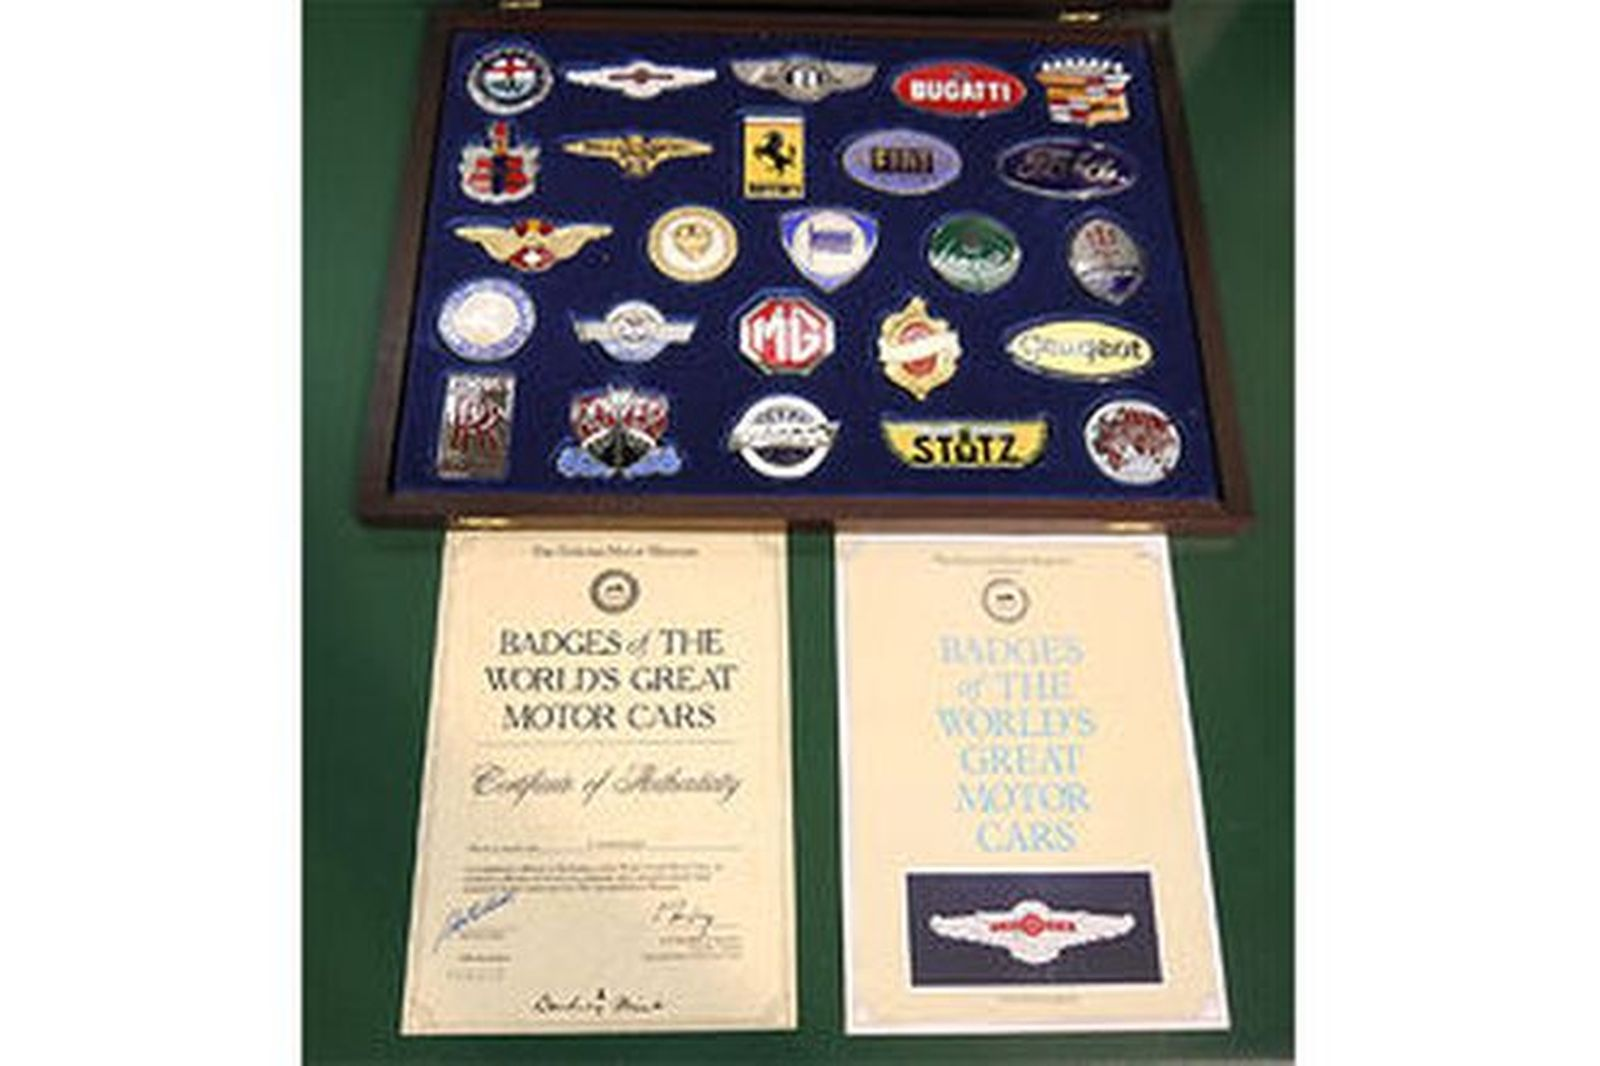 Set of 25 Badges - 'The Worlds Great Motor Cars' by Danbury Mint with Certificates